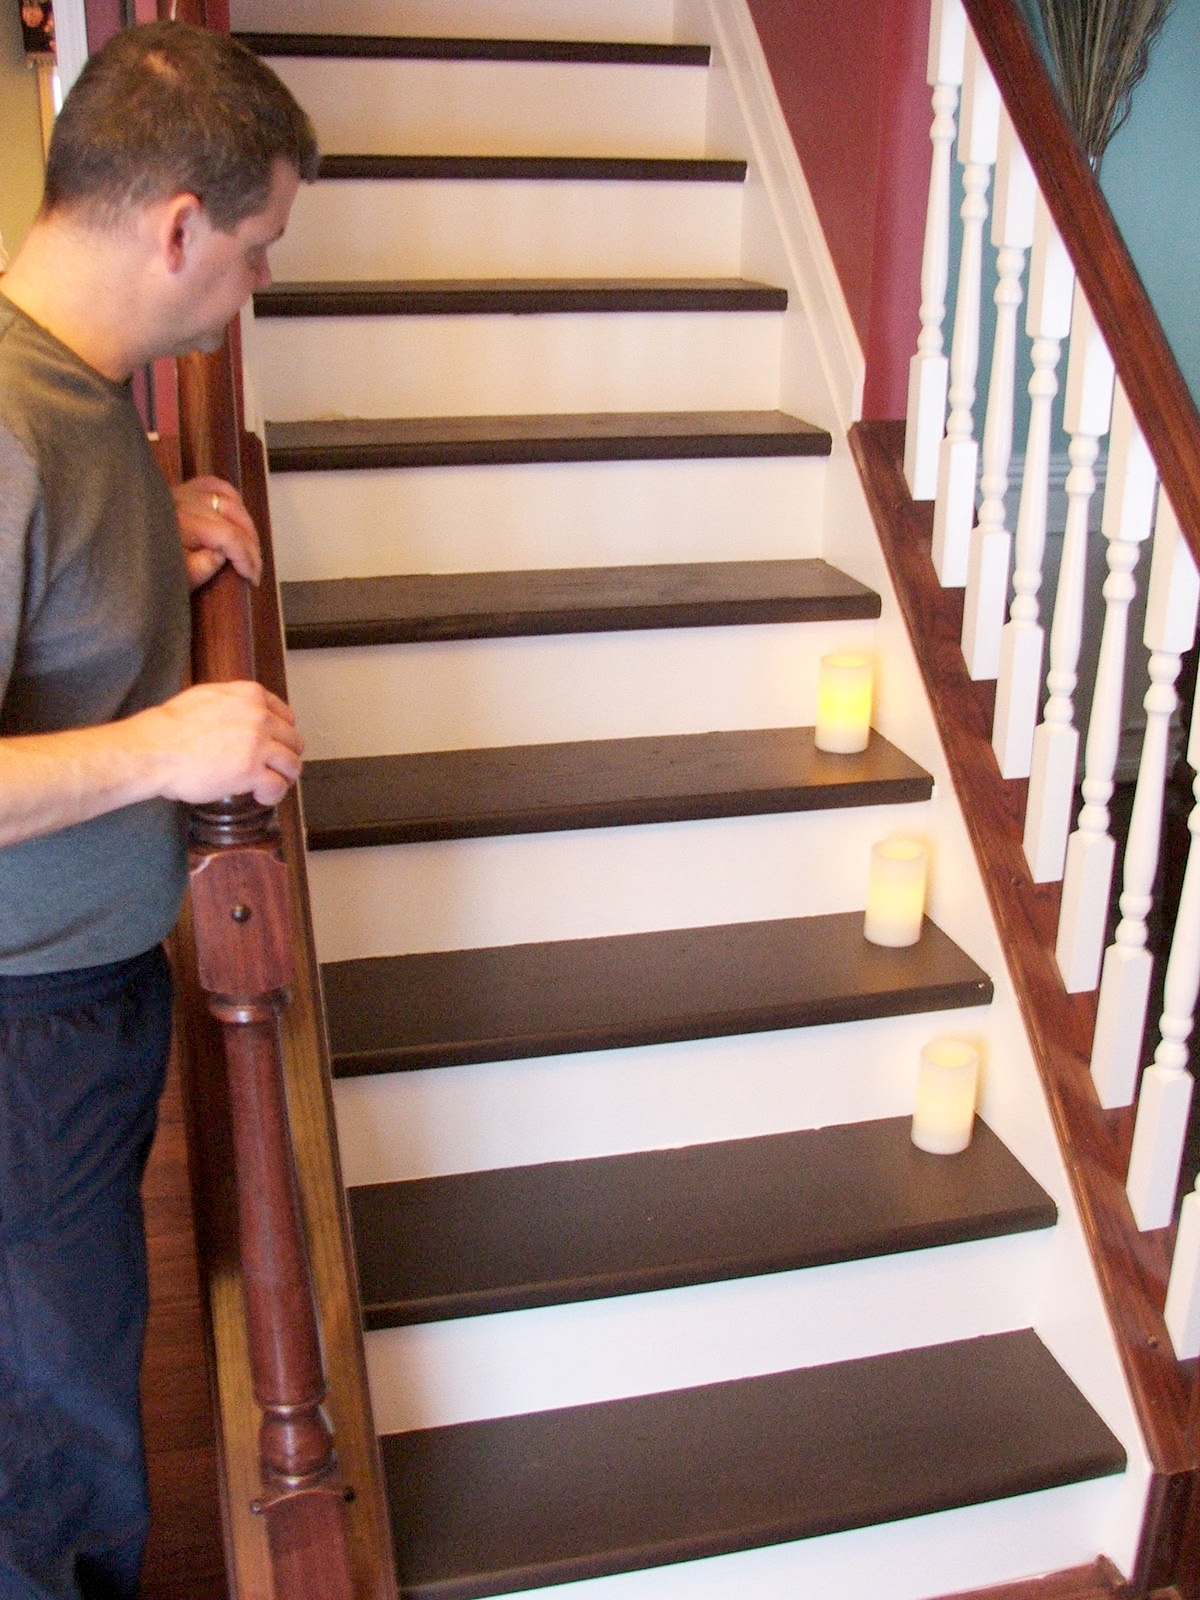 Top 15 Stair Treads For Wooden Stairs Stair Tread Rugs Ideas | Custom Oak Stair Treads